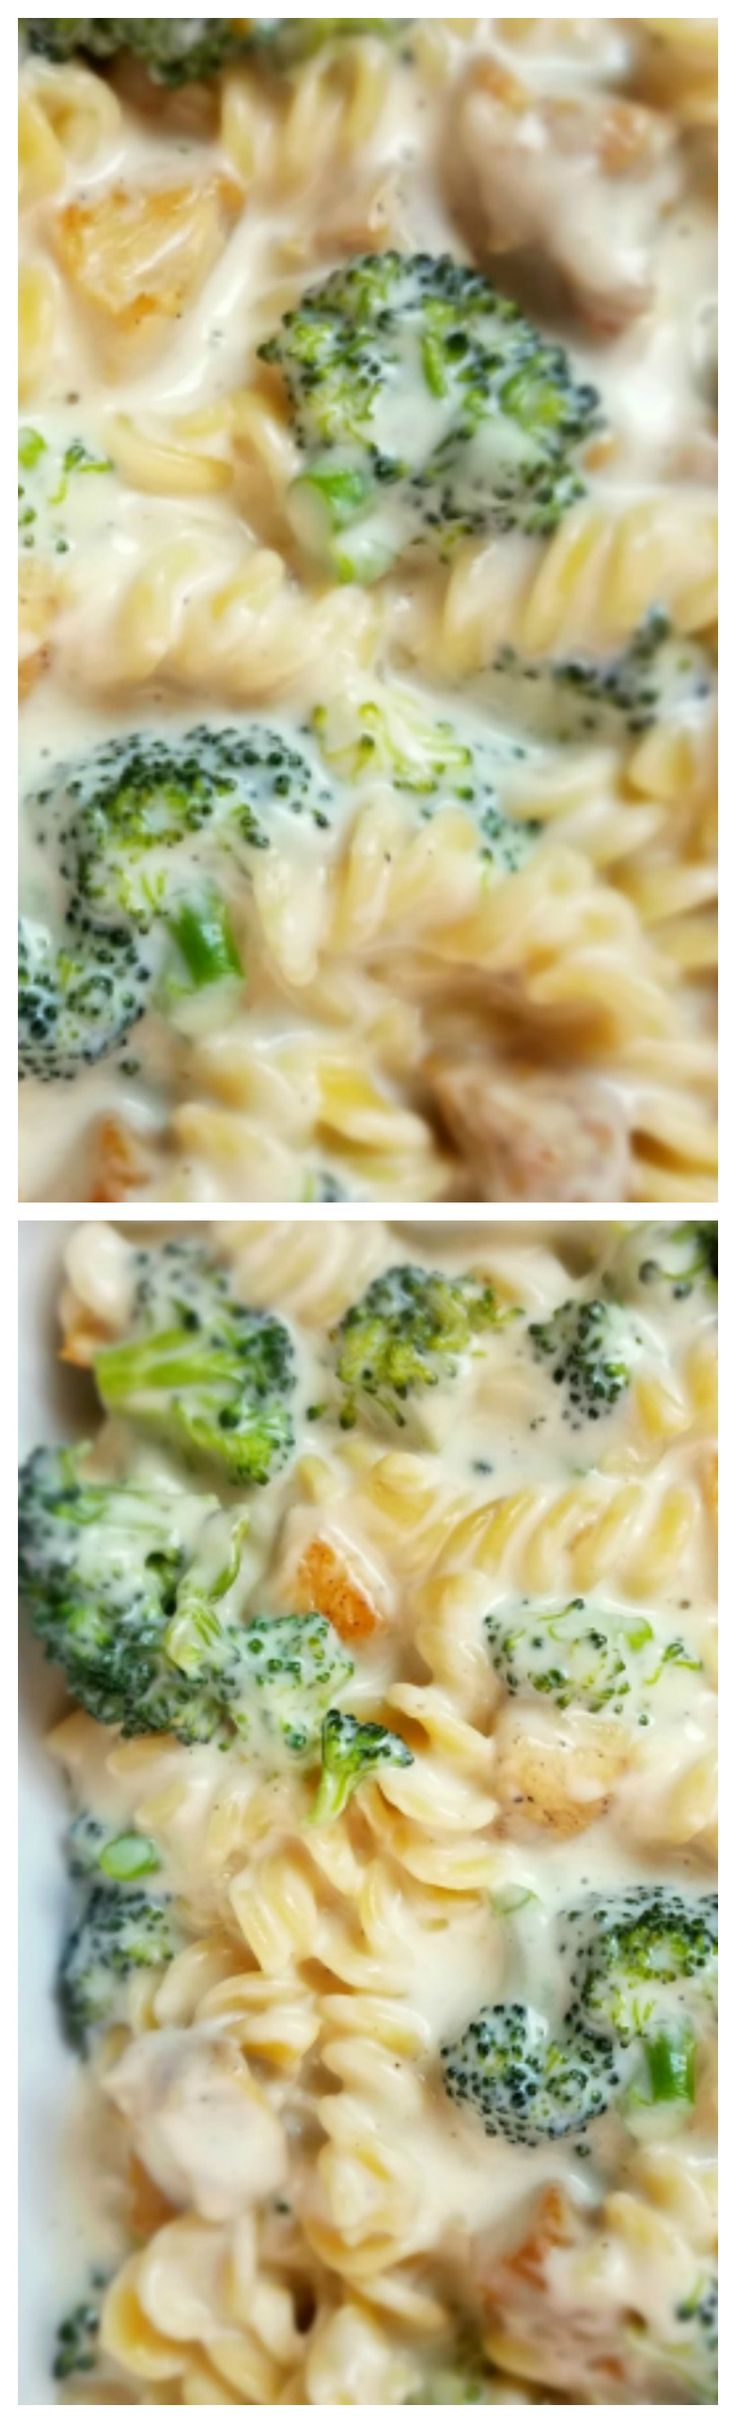 Chicken and Broccoli Macaroni and Cheese ~ Turn this humble side dish into a full meal by simply adding some cooked chicken and steamed broccoli to the pot.